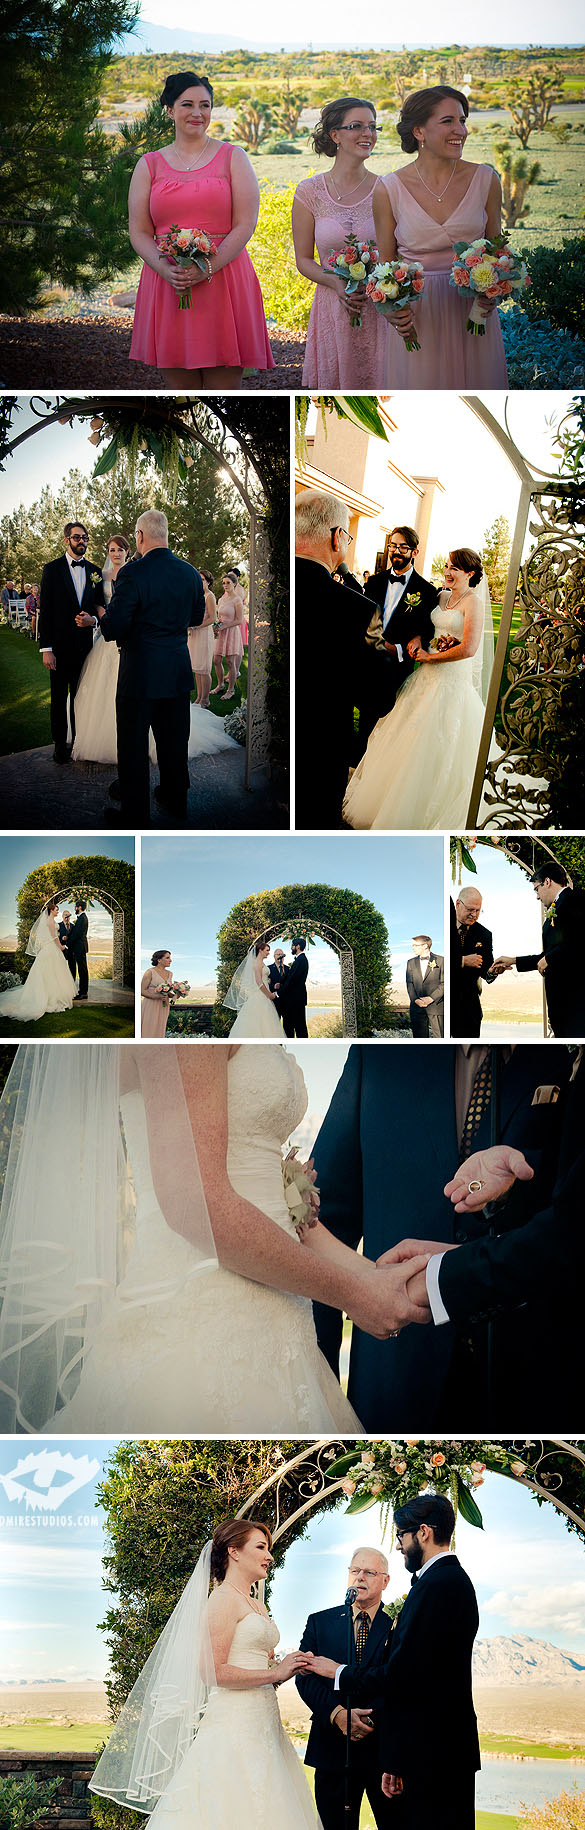 Patrick & Lindsay Country Club Wedding - Las Vegas, Nevada